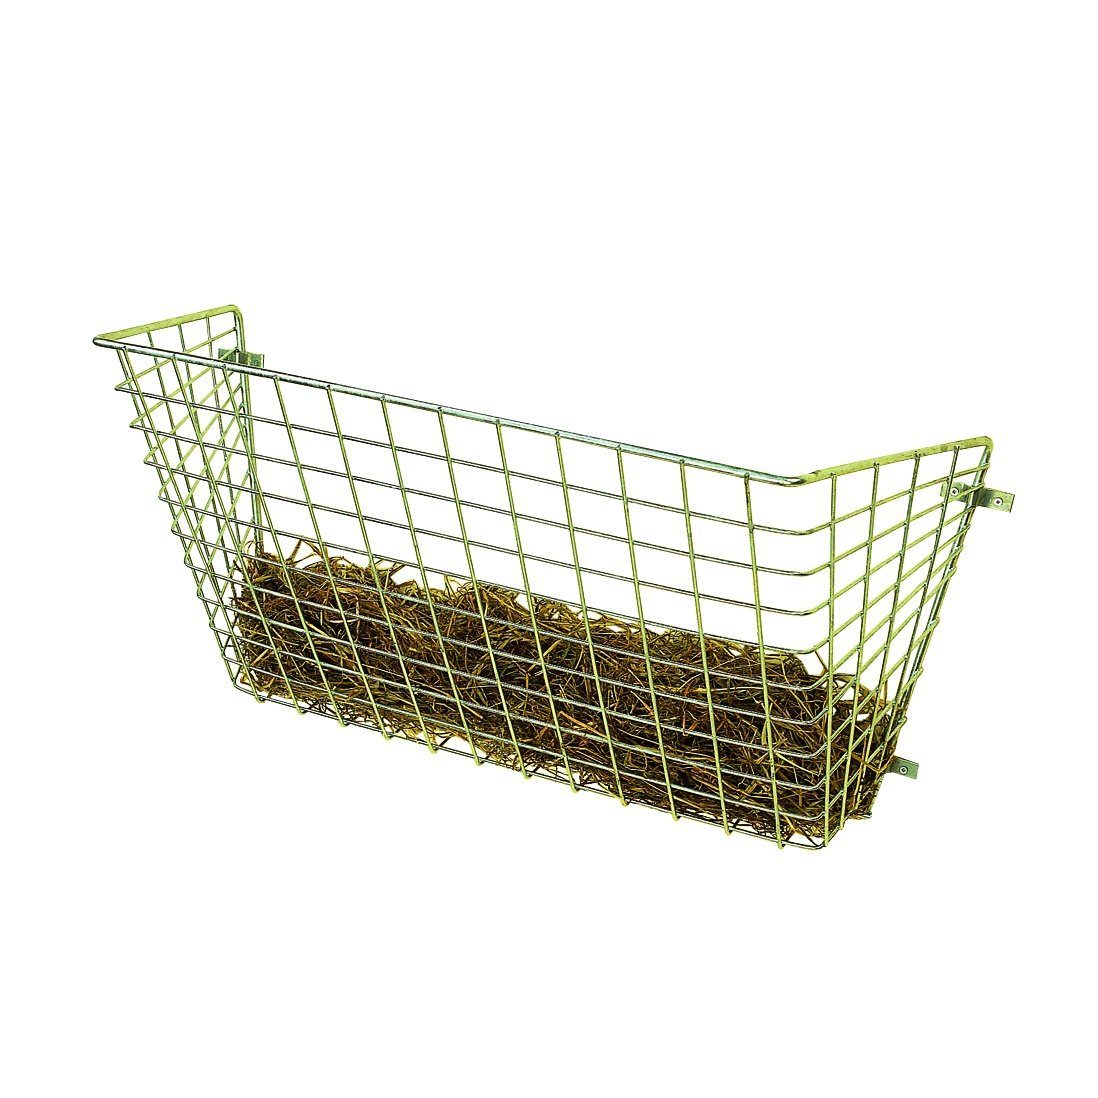 Stubbs Haylage Rack Wall Mounting S144 (One Size) (Silver)